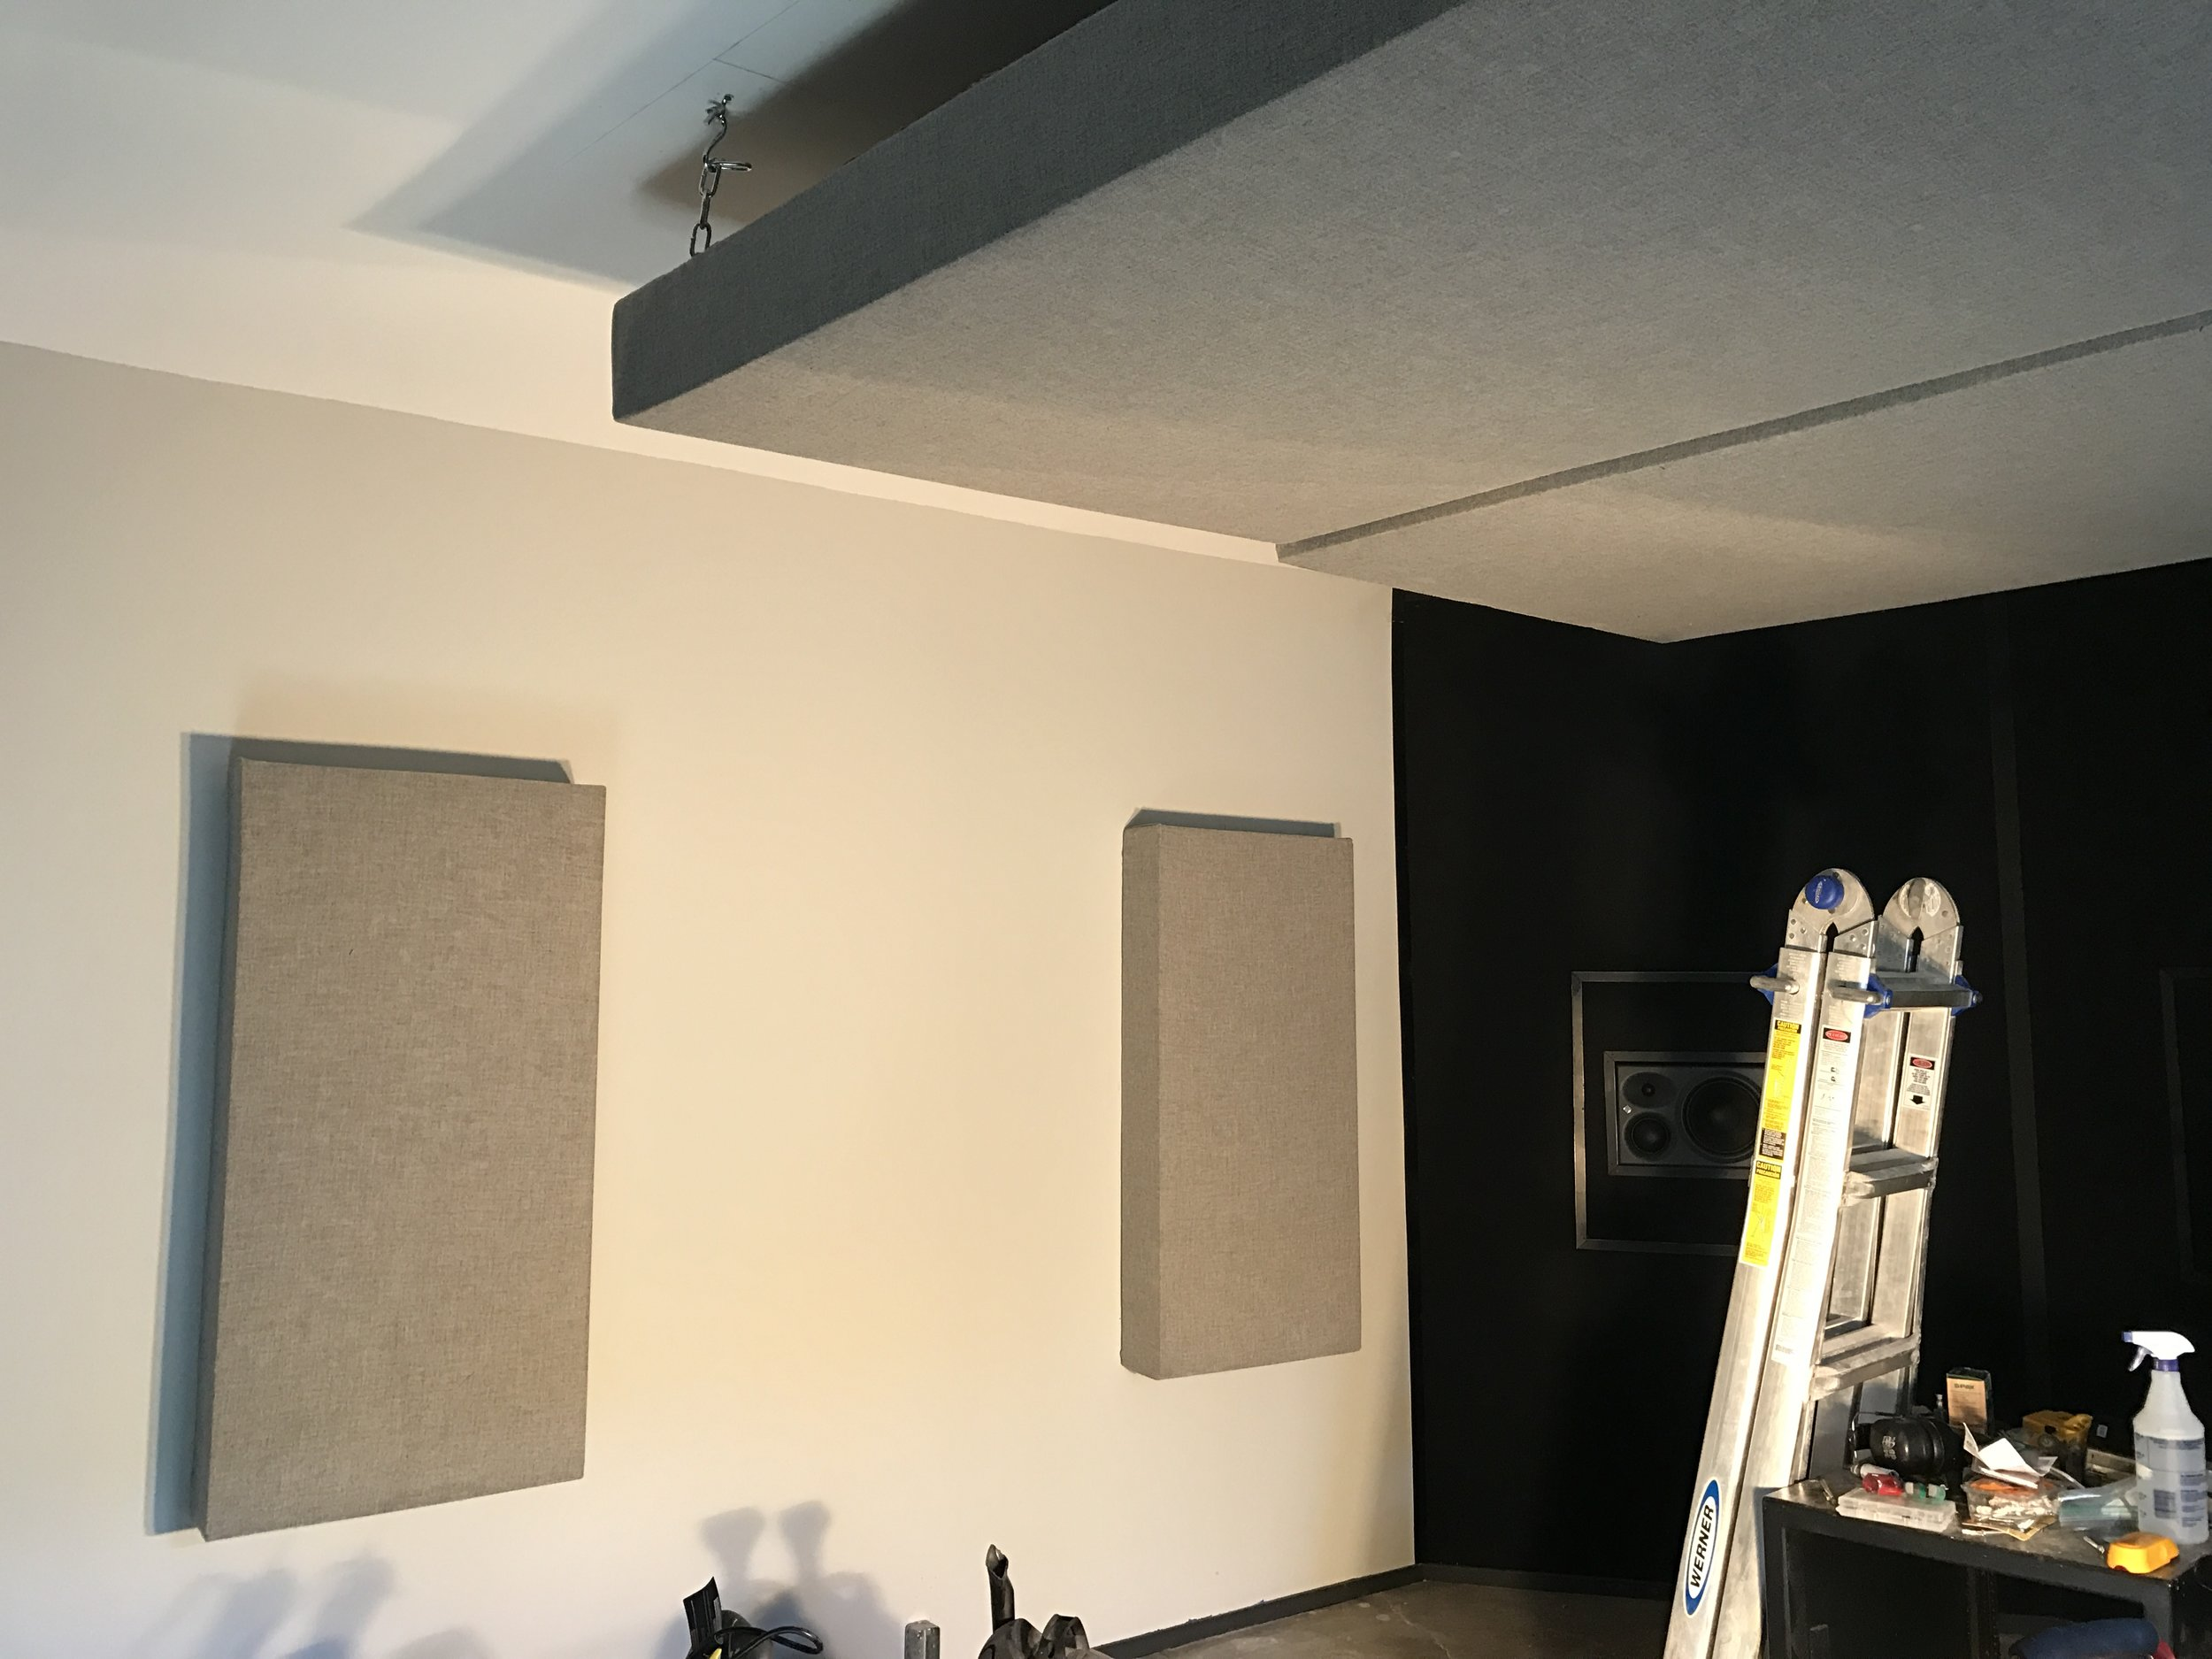 This is a shot of our new home studio which is currently under construction.  You can see two of the 2'x4' acoustic panels hung on the wall and two 4'x4' clouds hung from the ceiling. Please excuse the mess and the intense shadows in this photo.  We are about to embark on wiring our own electrical outlets today, so I used a work lamp to light this picture.